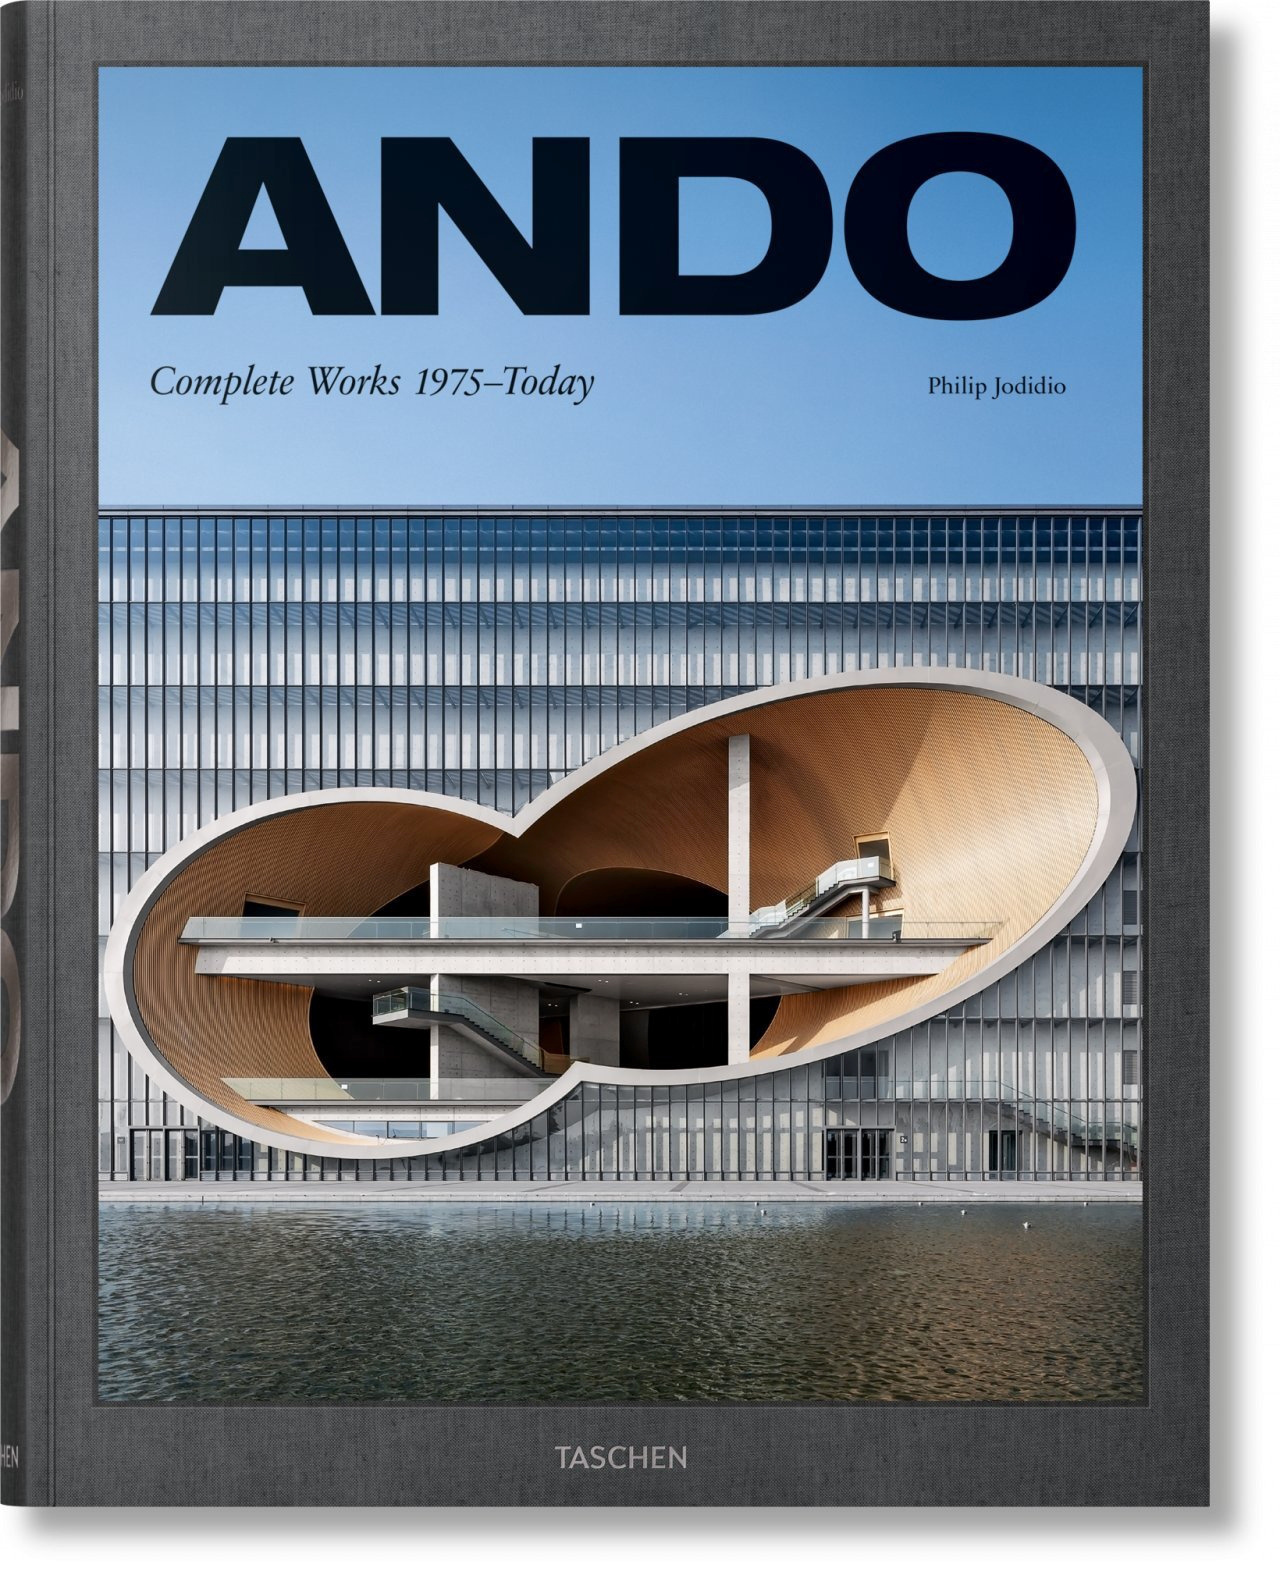 ANDO. COMPLETE WORKS 1975-TODAY - ANDO, UPDATED VERSION